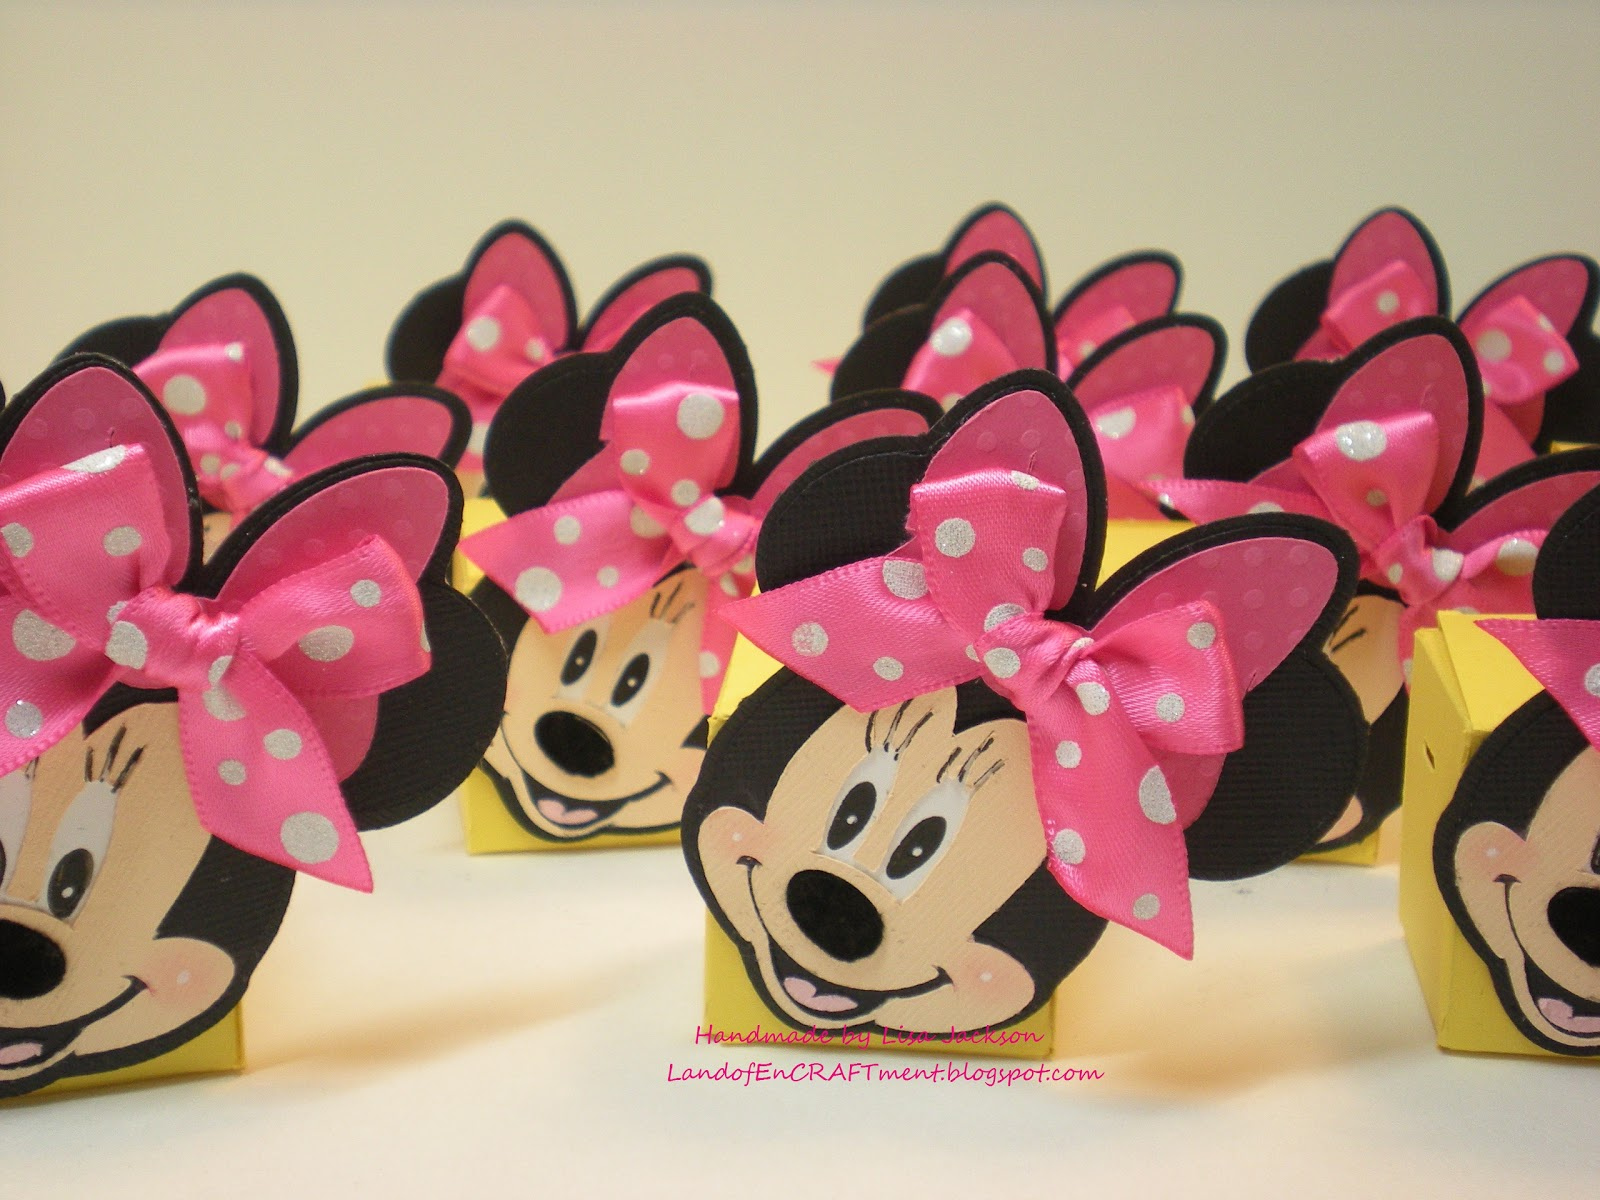 Land Of Encraftment Oh Minnie Mouse Birthday Party JPG 1600x1200 Supplies City